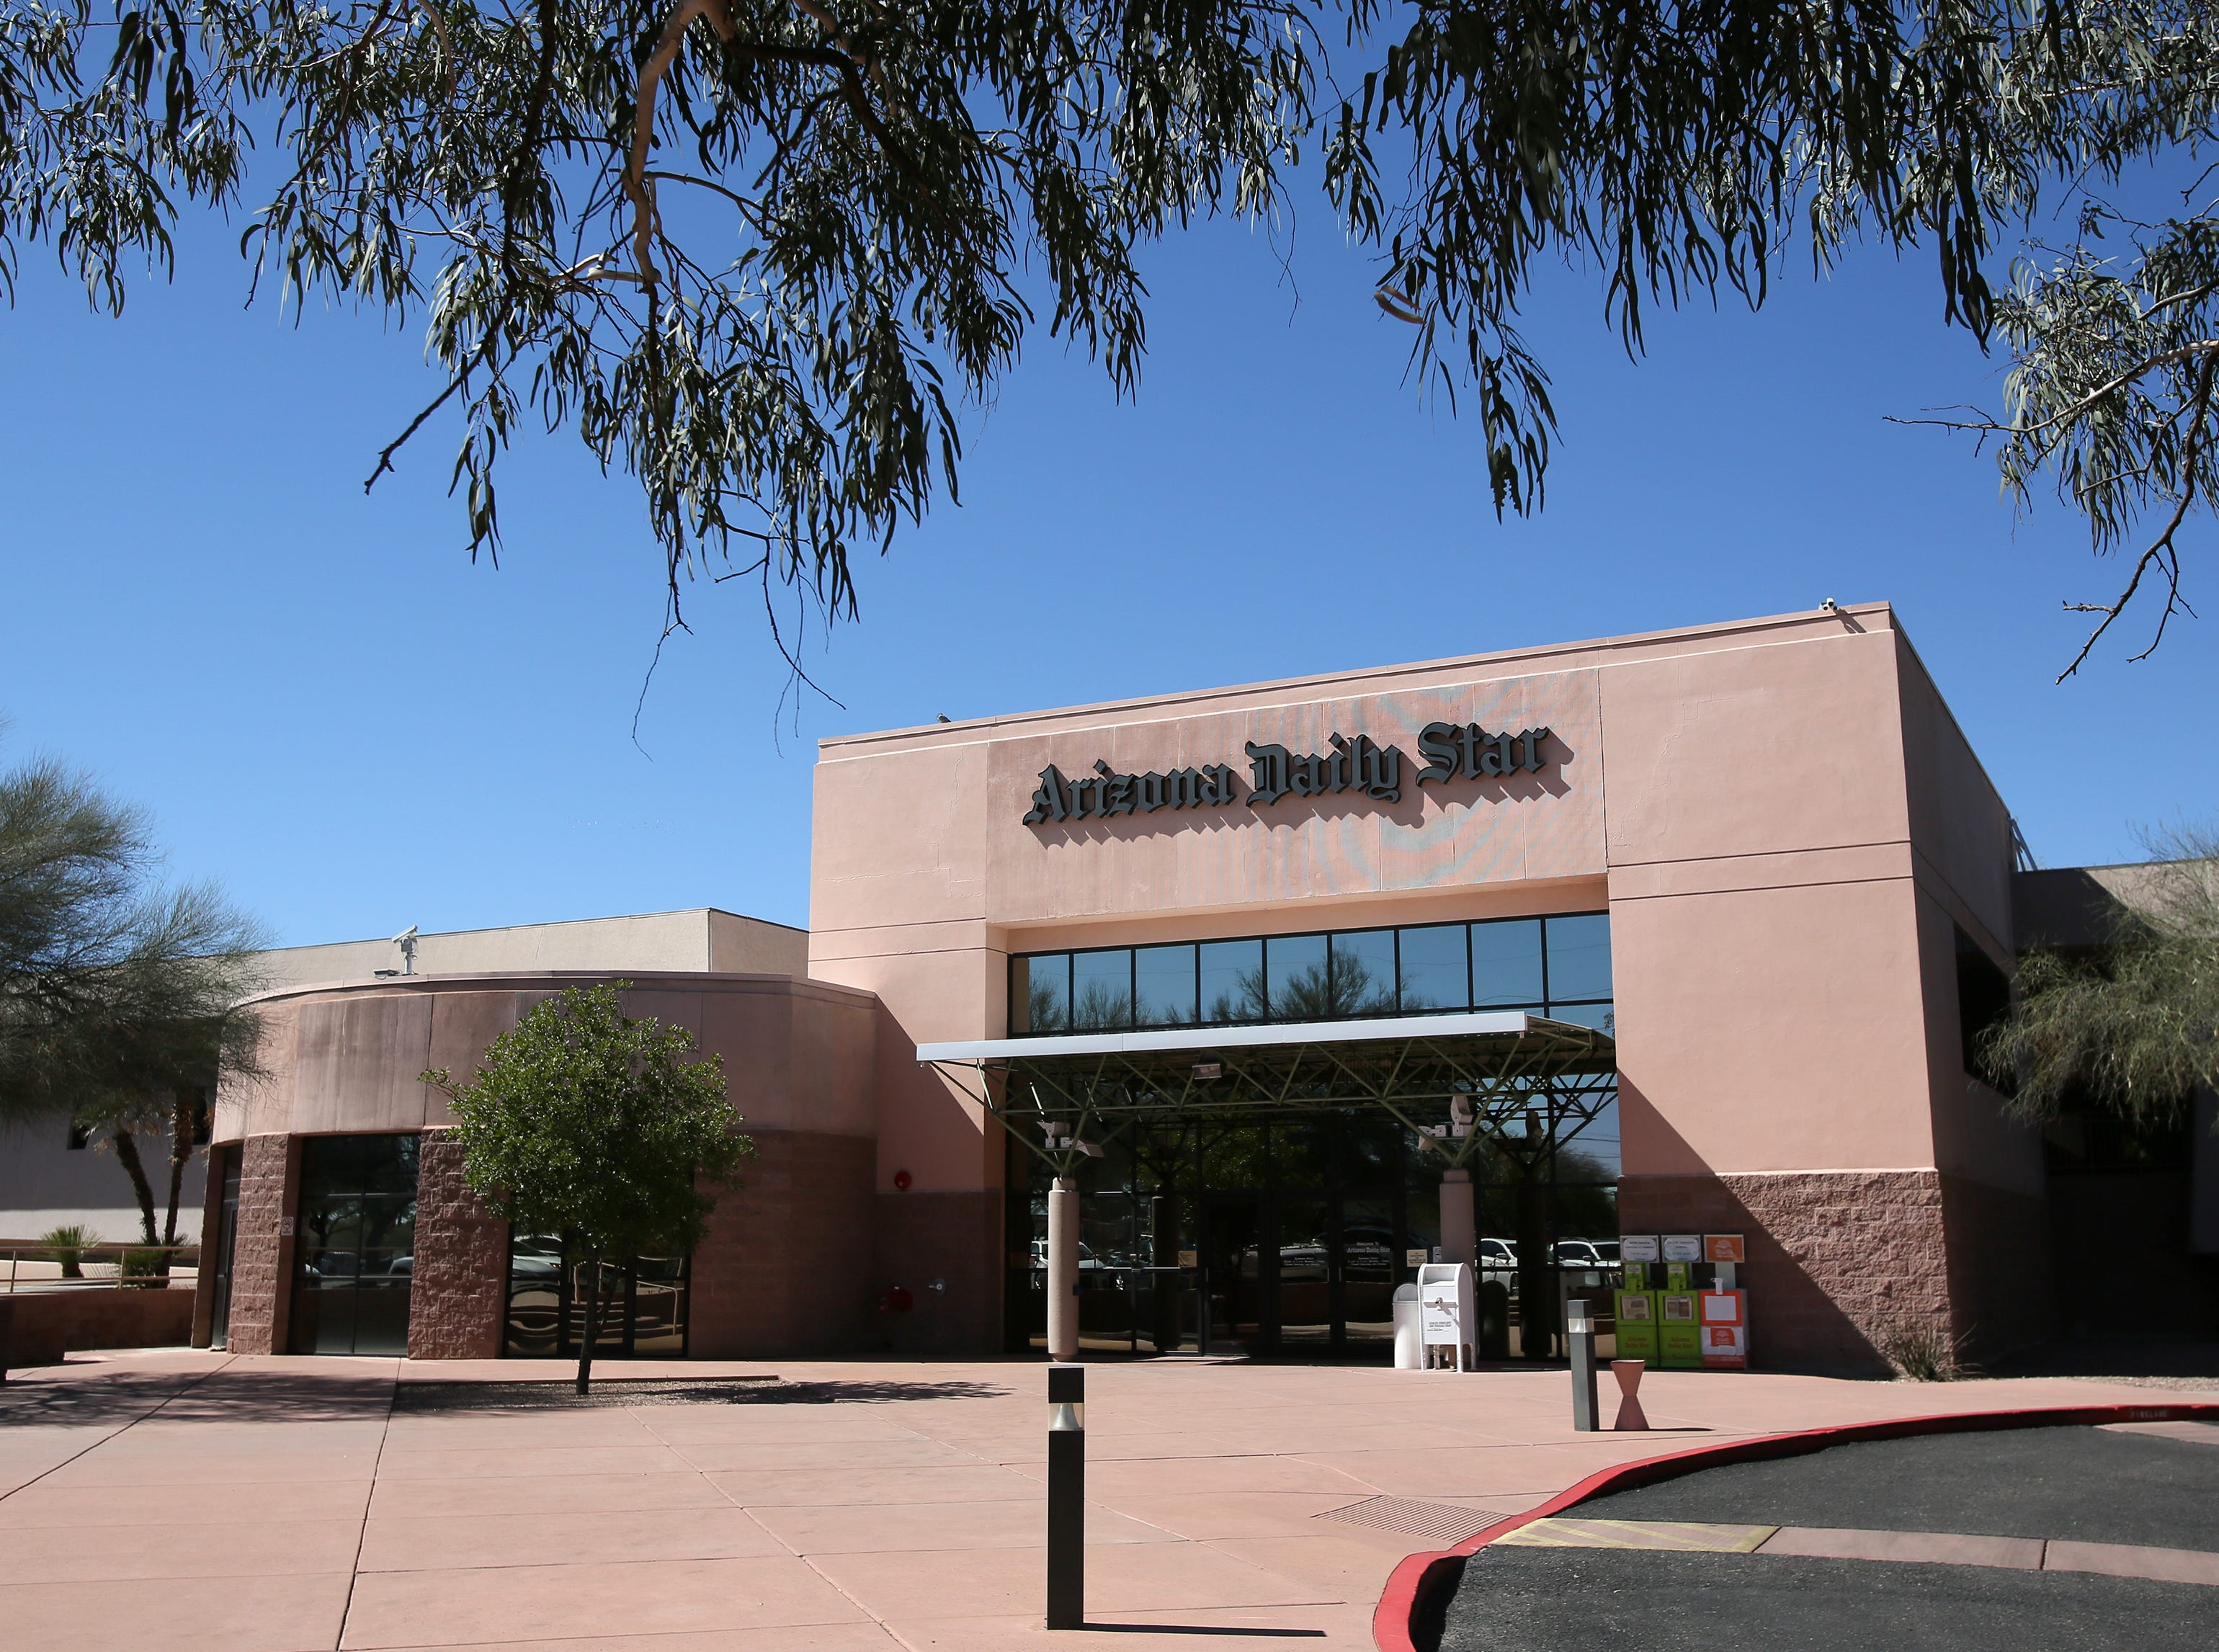 The Arizona Daily Star newspaper building  at 4850 S. Park Ave. in Tucson on Feb. 26, 2018.